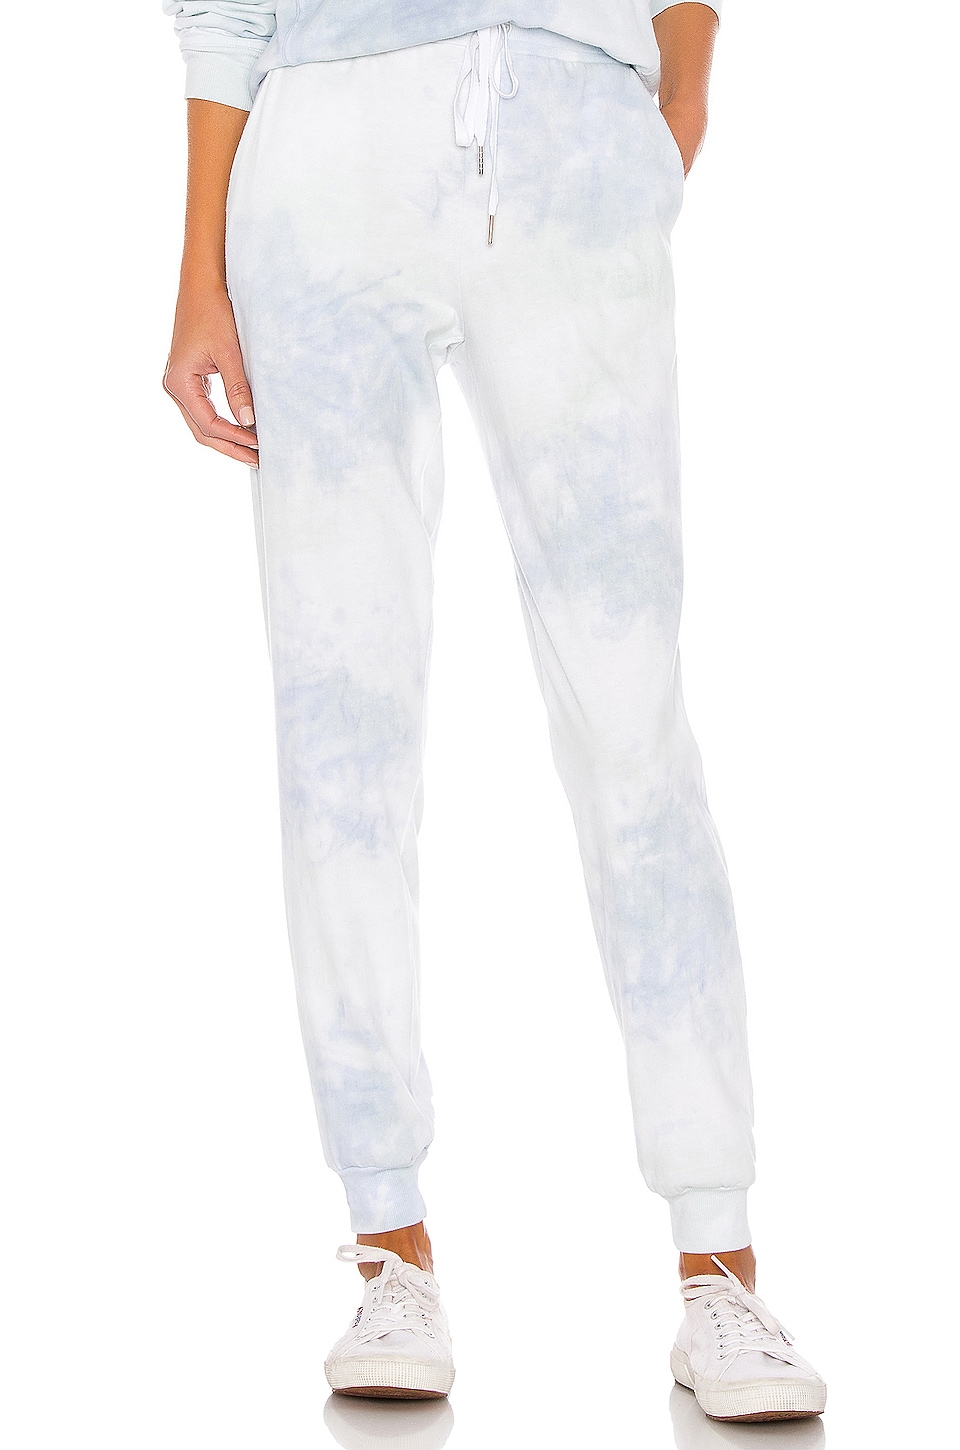 Michael Stars Giselle Pant in Raindrop